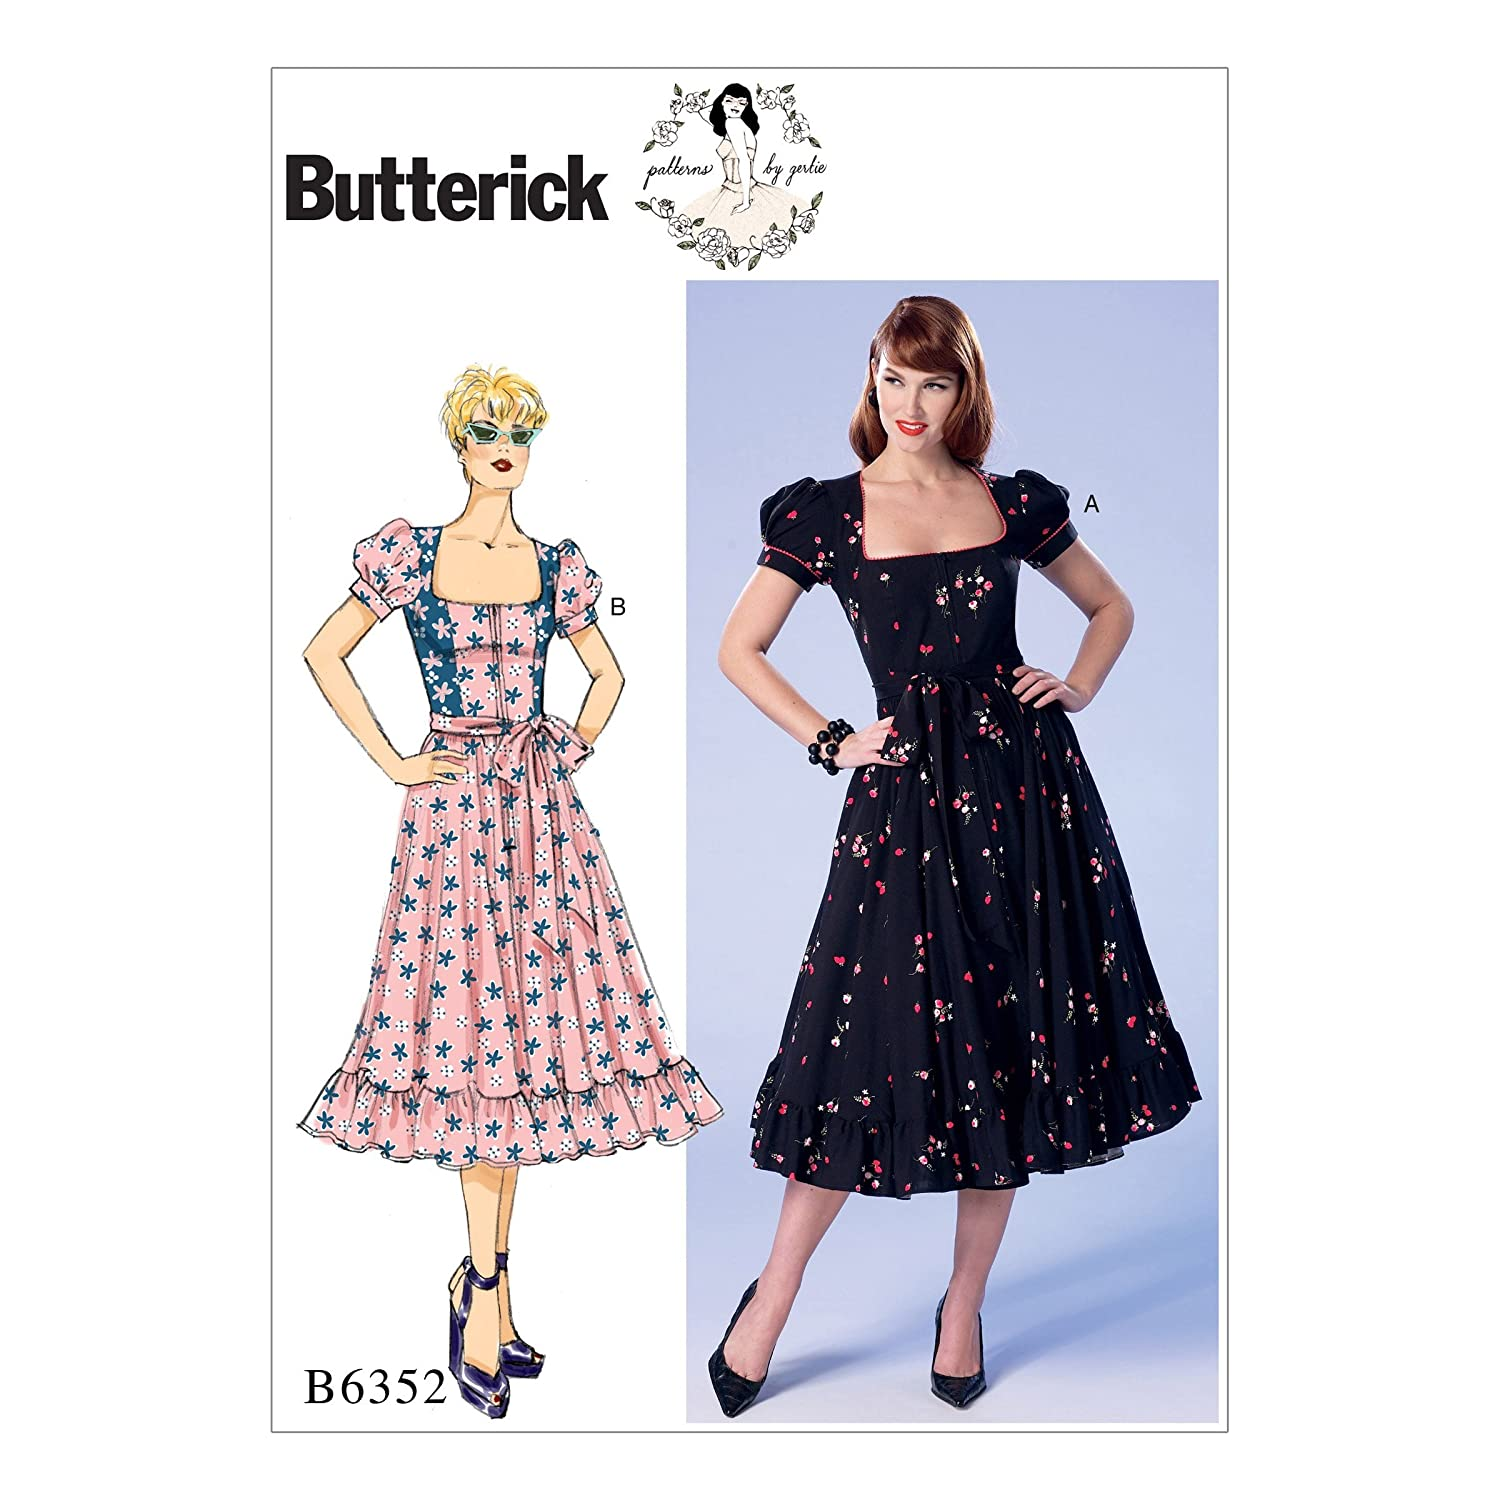 1950s Sewing Patterns- Dresses, Skirts, Tops, Pants Petite Square-Neck Zip-Front Ruffled Dresses and Belt by Gertie (14-16-18-20-22) $8.52 AT vintagedancer.com